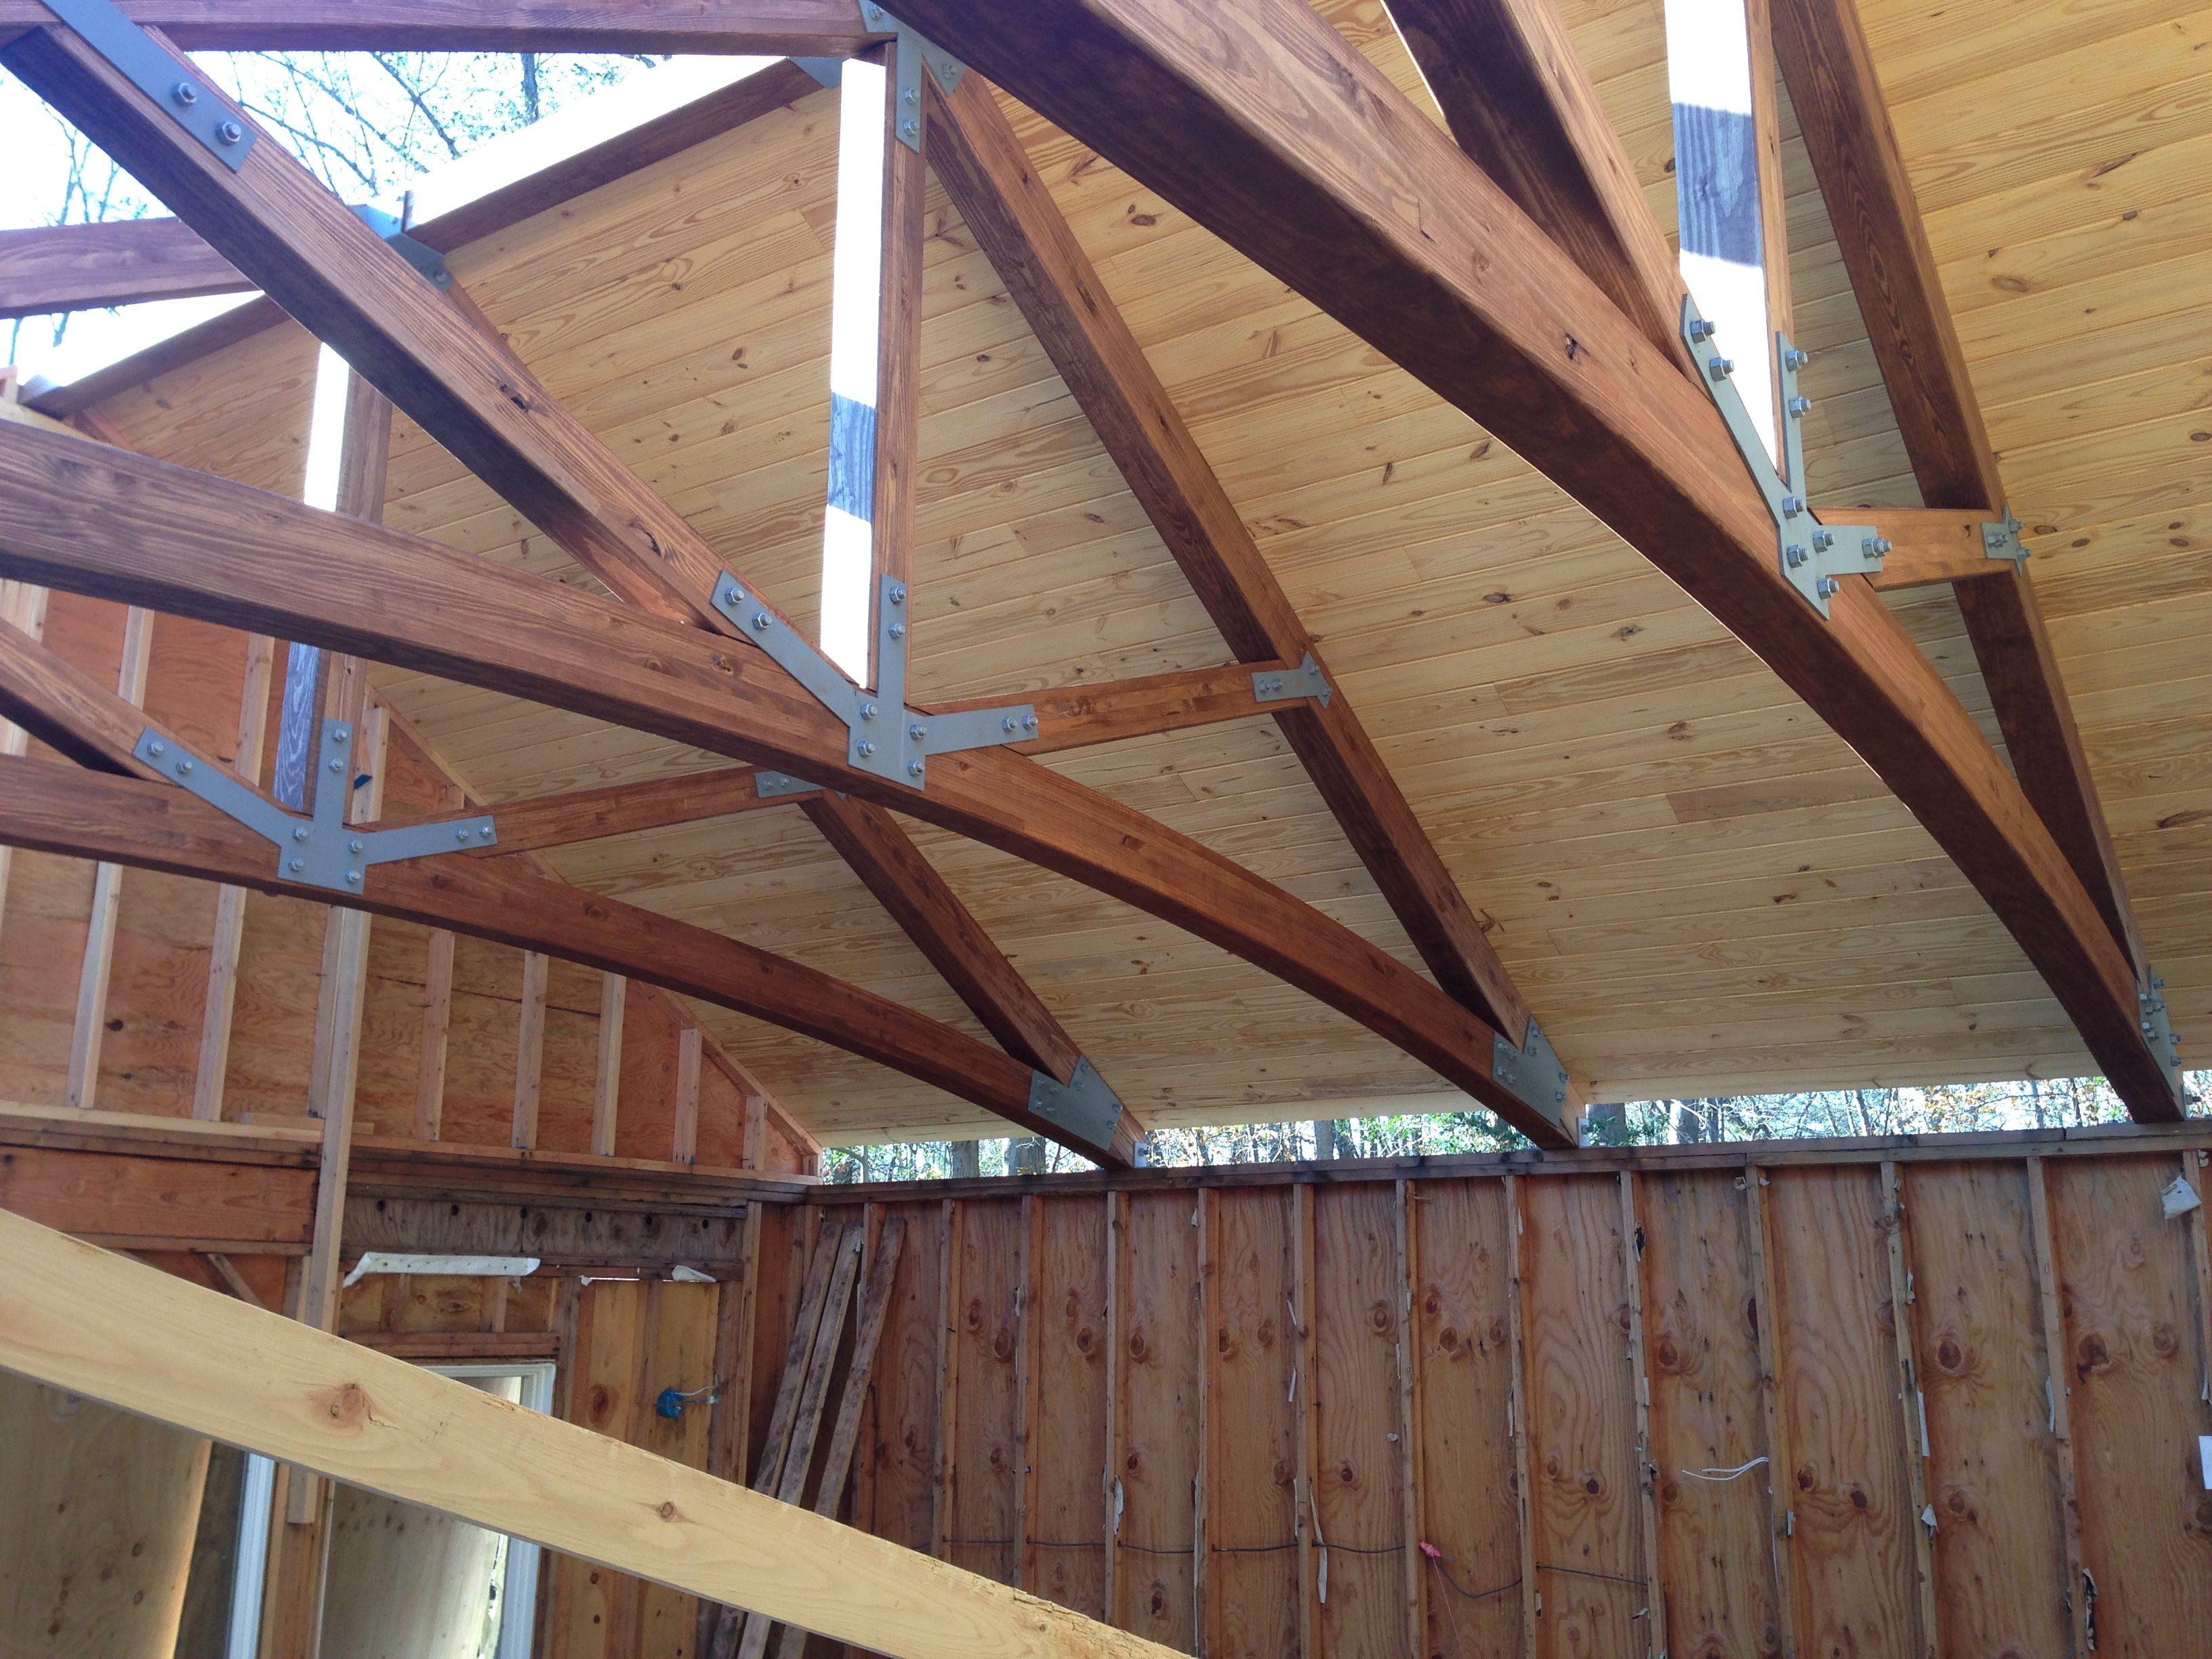 Glulam Abstraction >> Another Shot Of Our Glulam Truss For A Pool House Now With 2x6